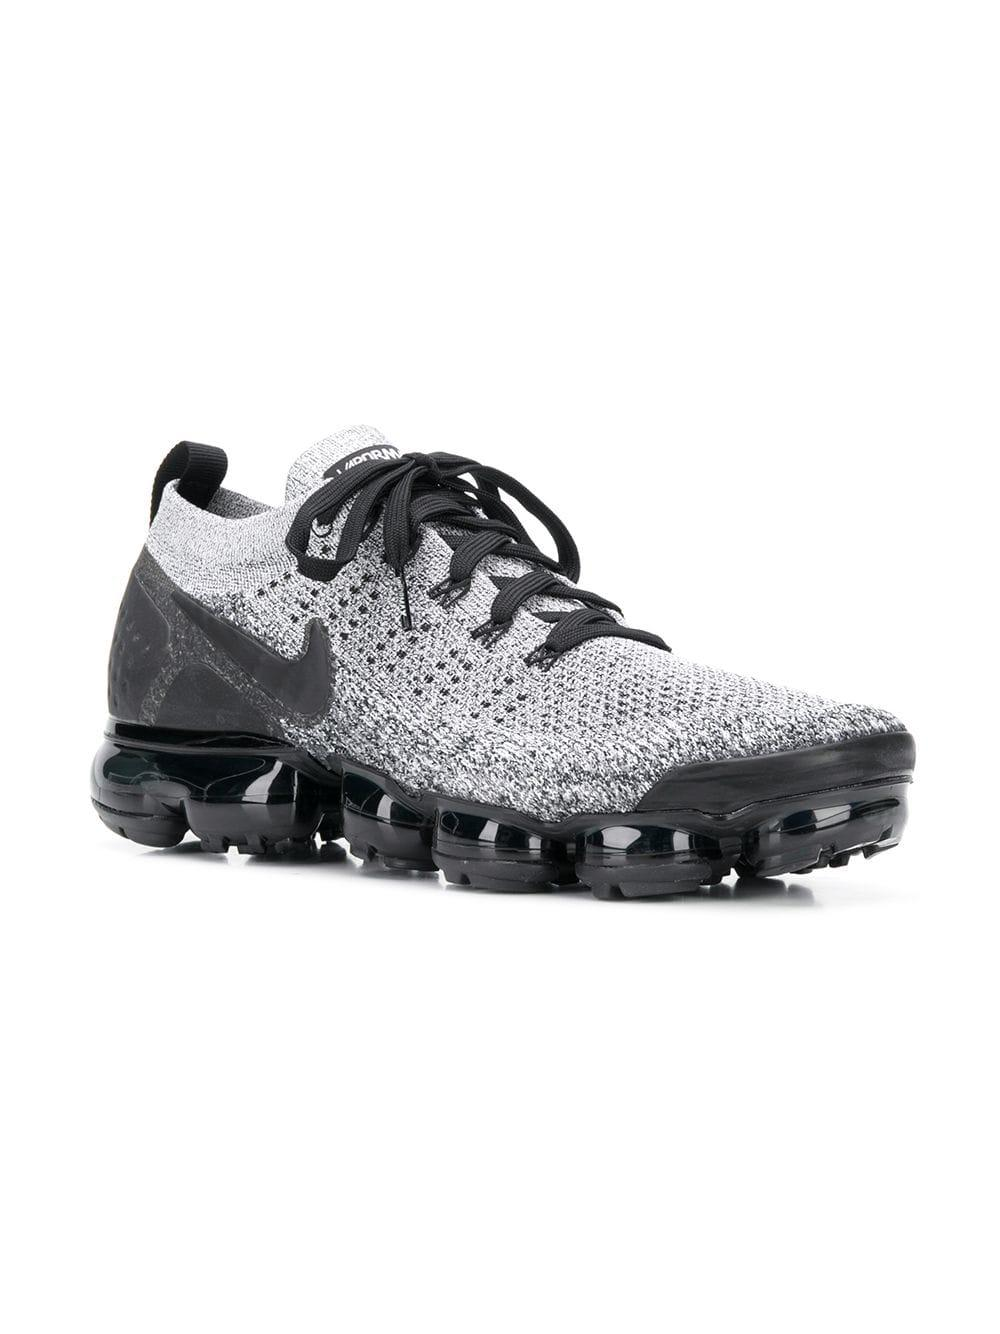 bffe714fe225 Lyst - Nike Air Vapormax Flyknit 2 Sneakers in Black for Men - Save  4.50450450450451%